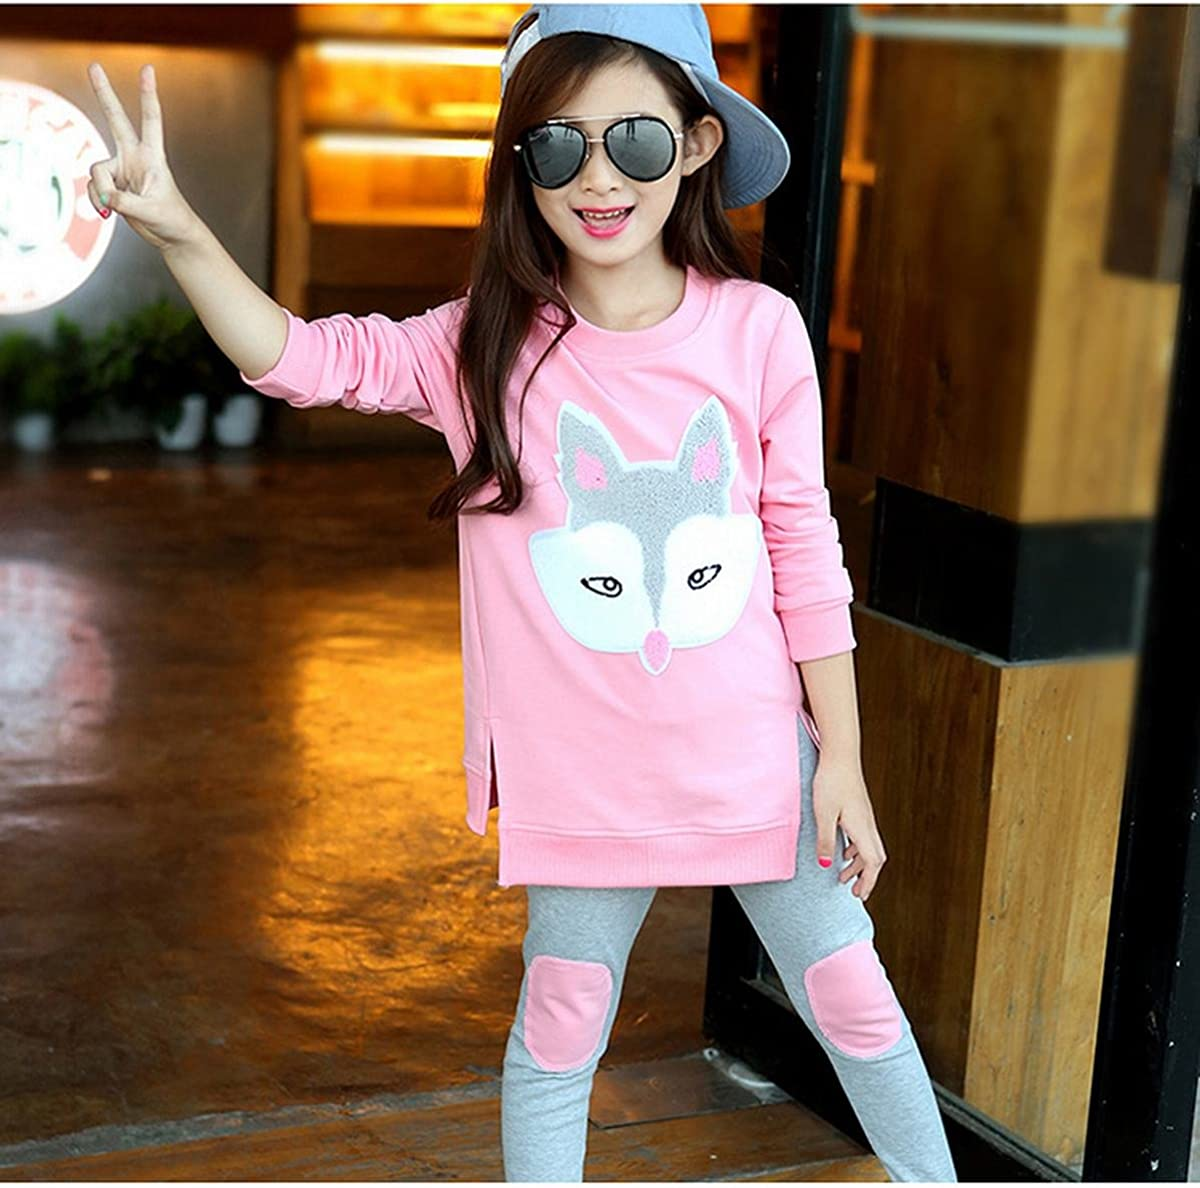 EFZQ Little Girls 2 Pieces Long Sleeve Top and Legging Sets